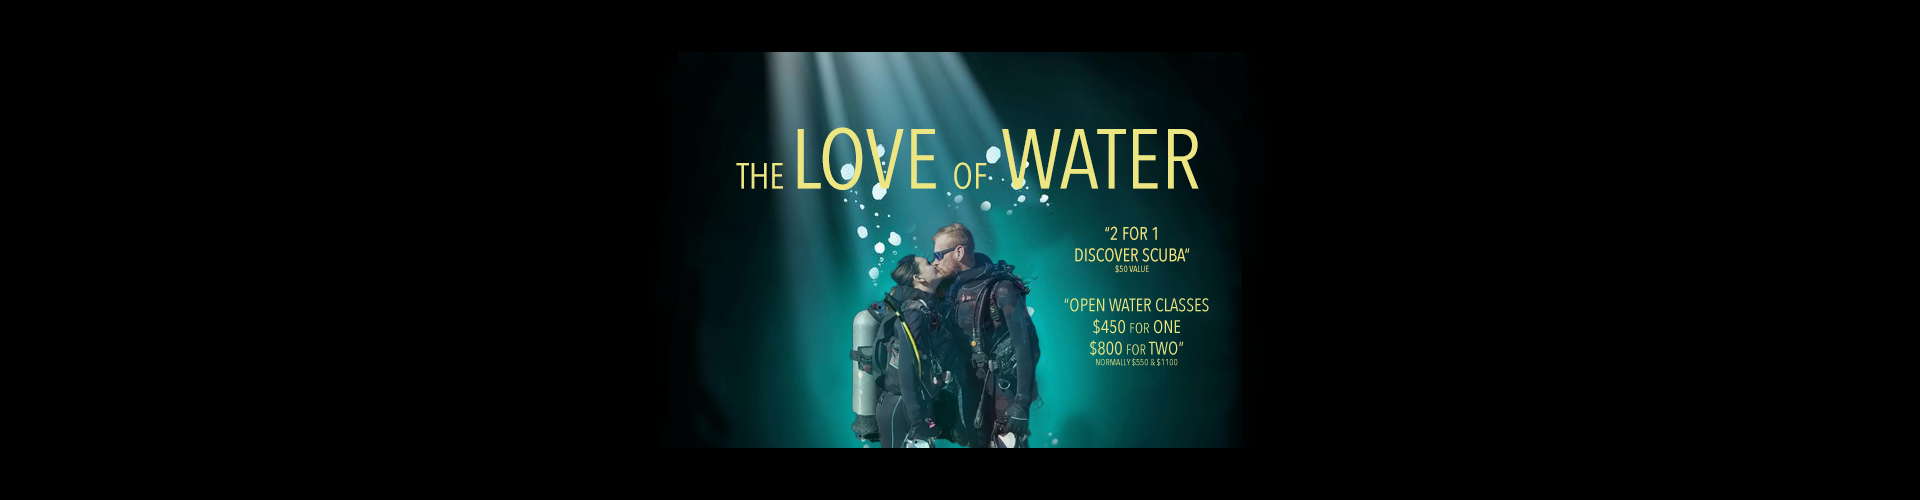 The Love of Water